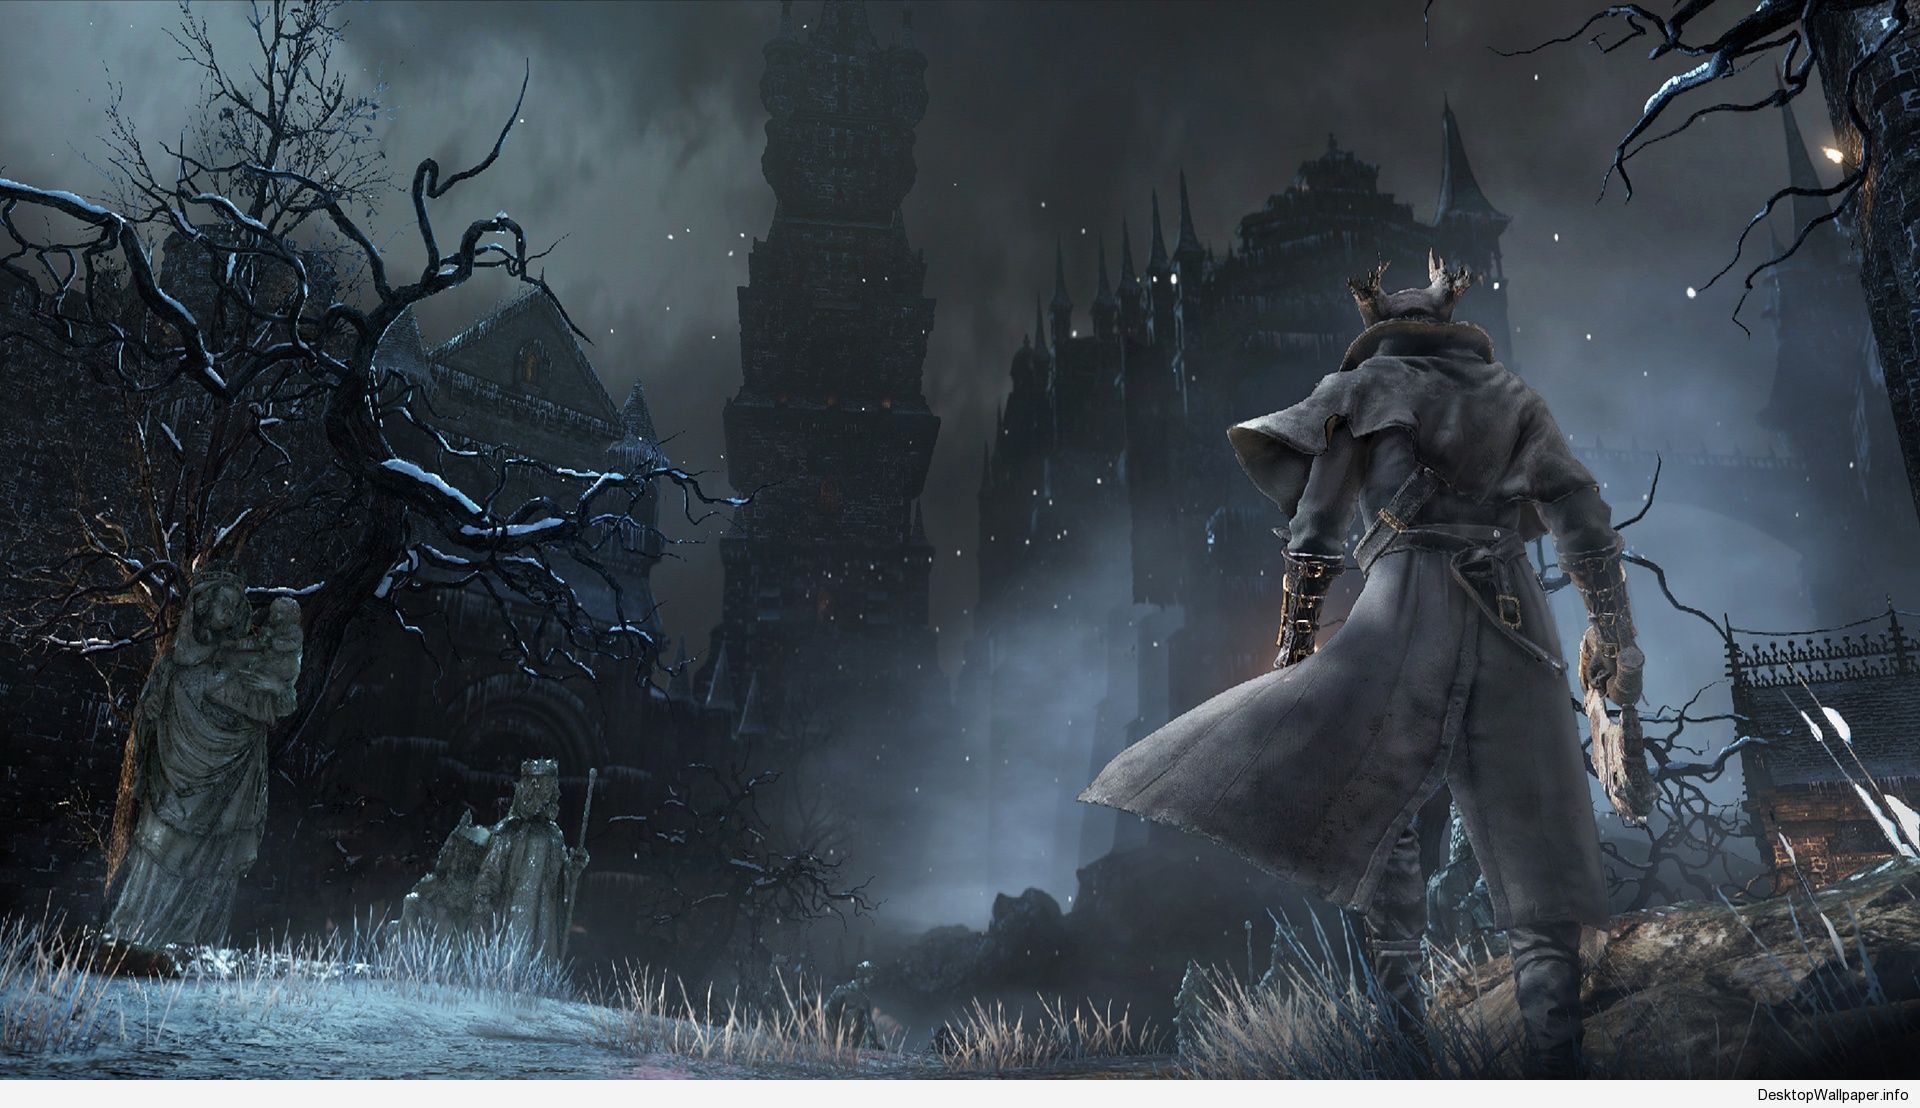 Bloodborne Live Wallpaper Http Desktopwallpaper Info Bloodborne Live Wallpaper 7111 Bloodborne Wallpaper Bloo Bloodborne Game Bloodborne Bloodborne Art